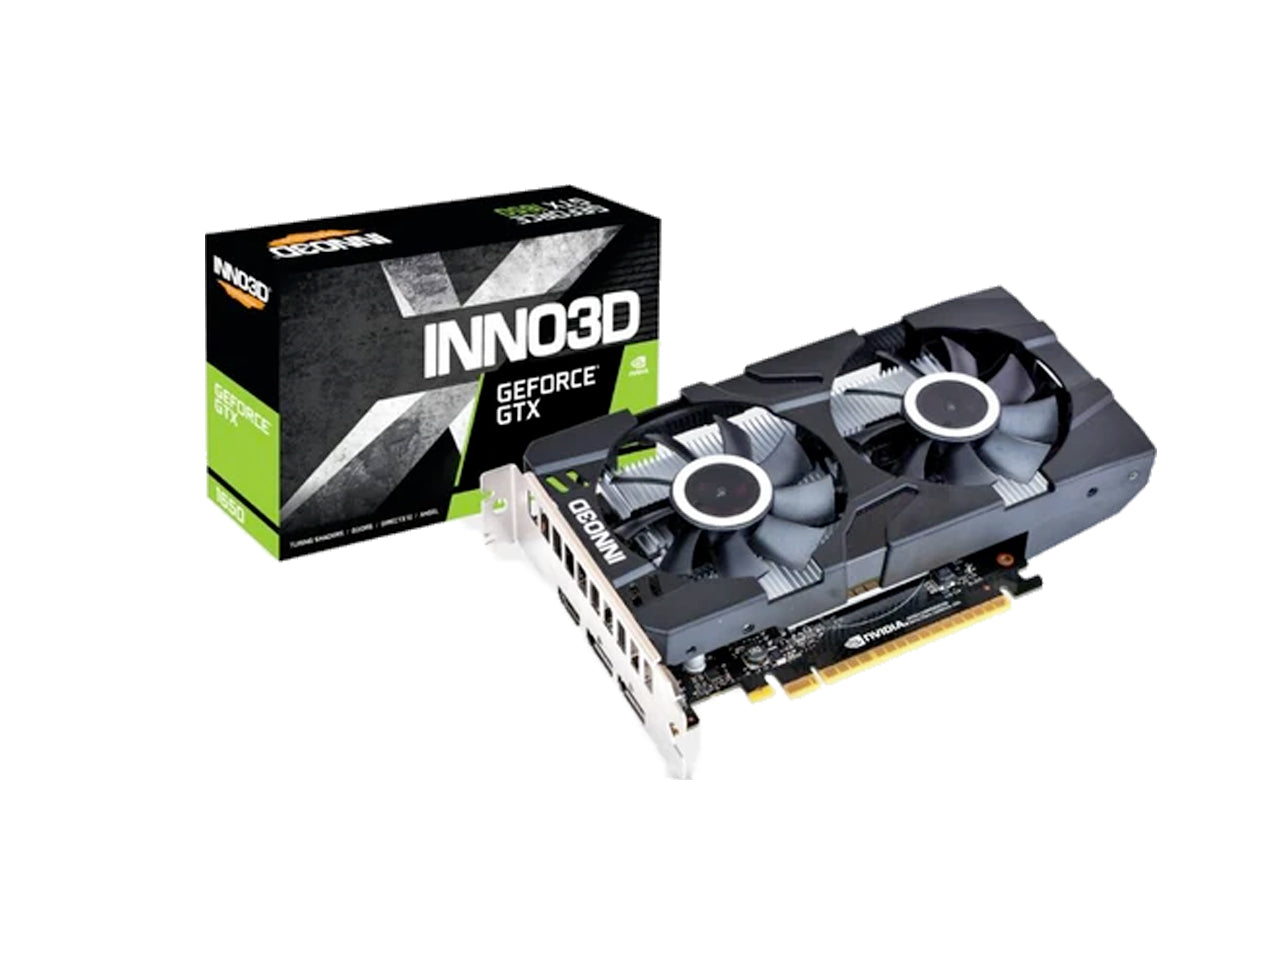 INNO3D GEFORCE GTX 1650 TWIN X2 OC Graphics Card.-computerspace